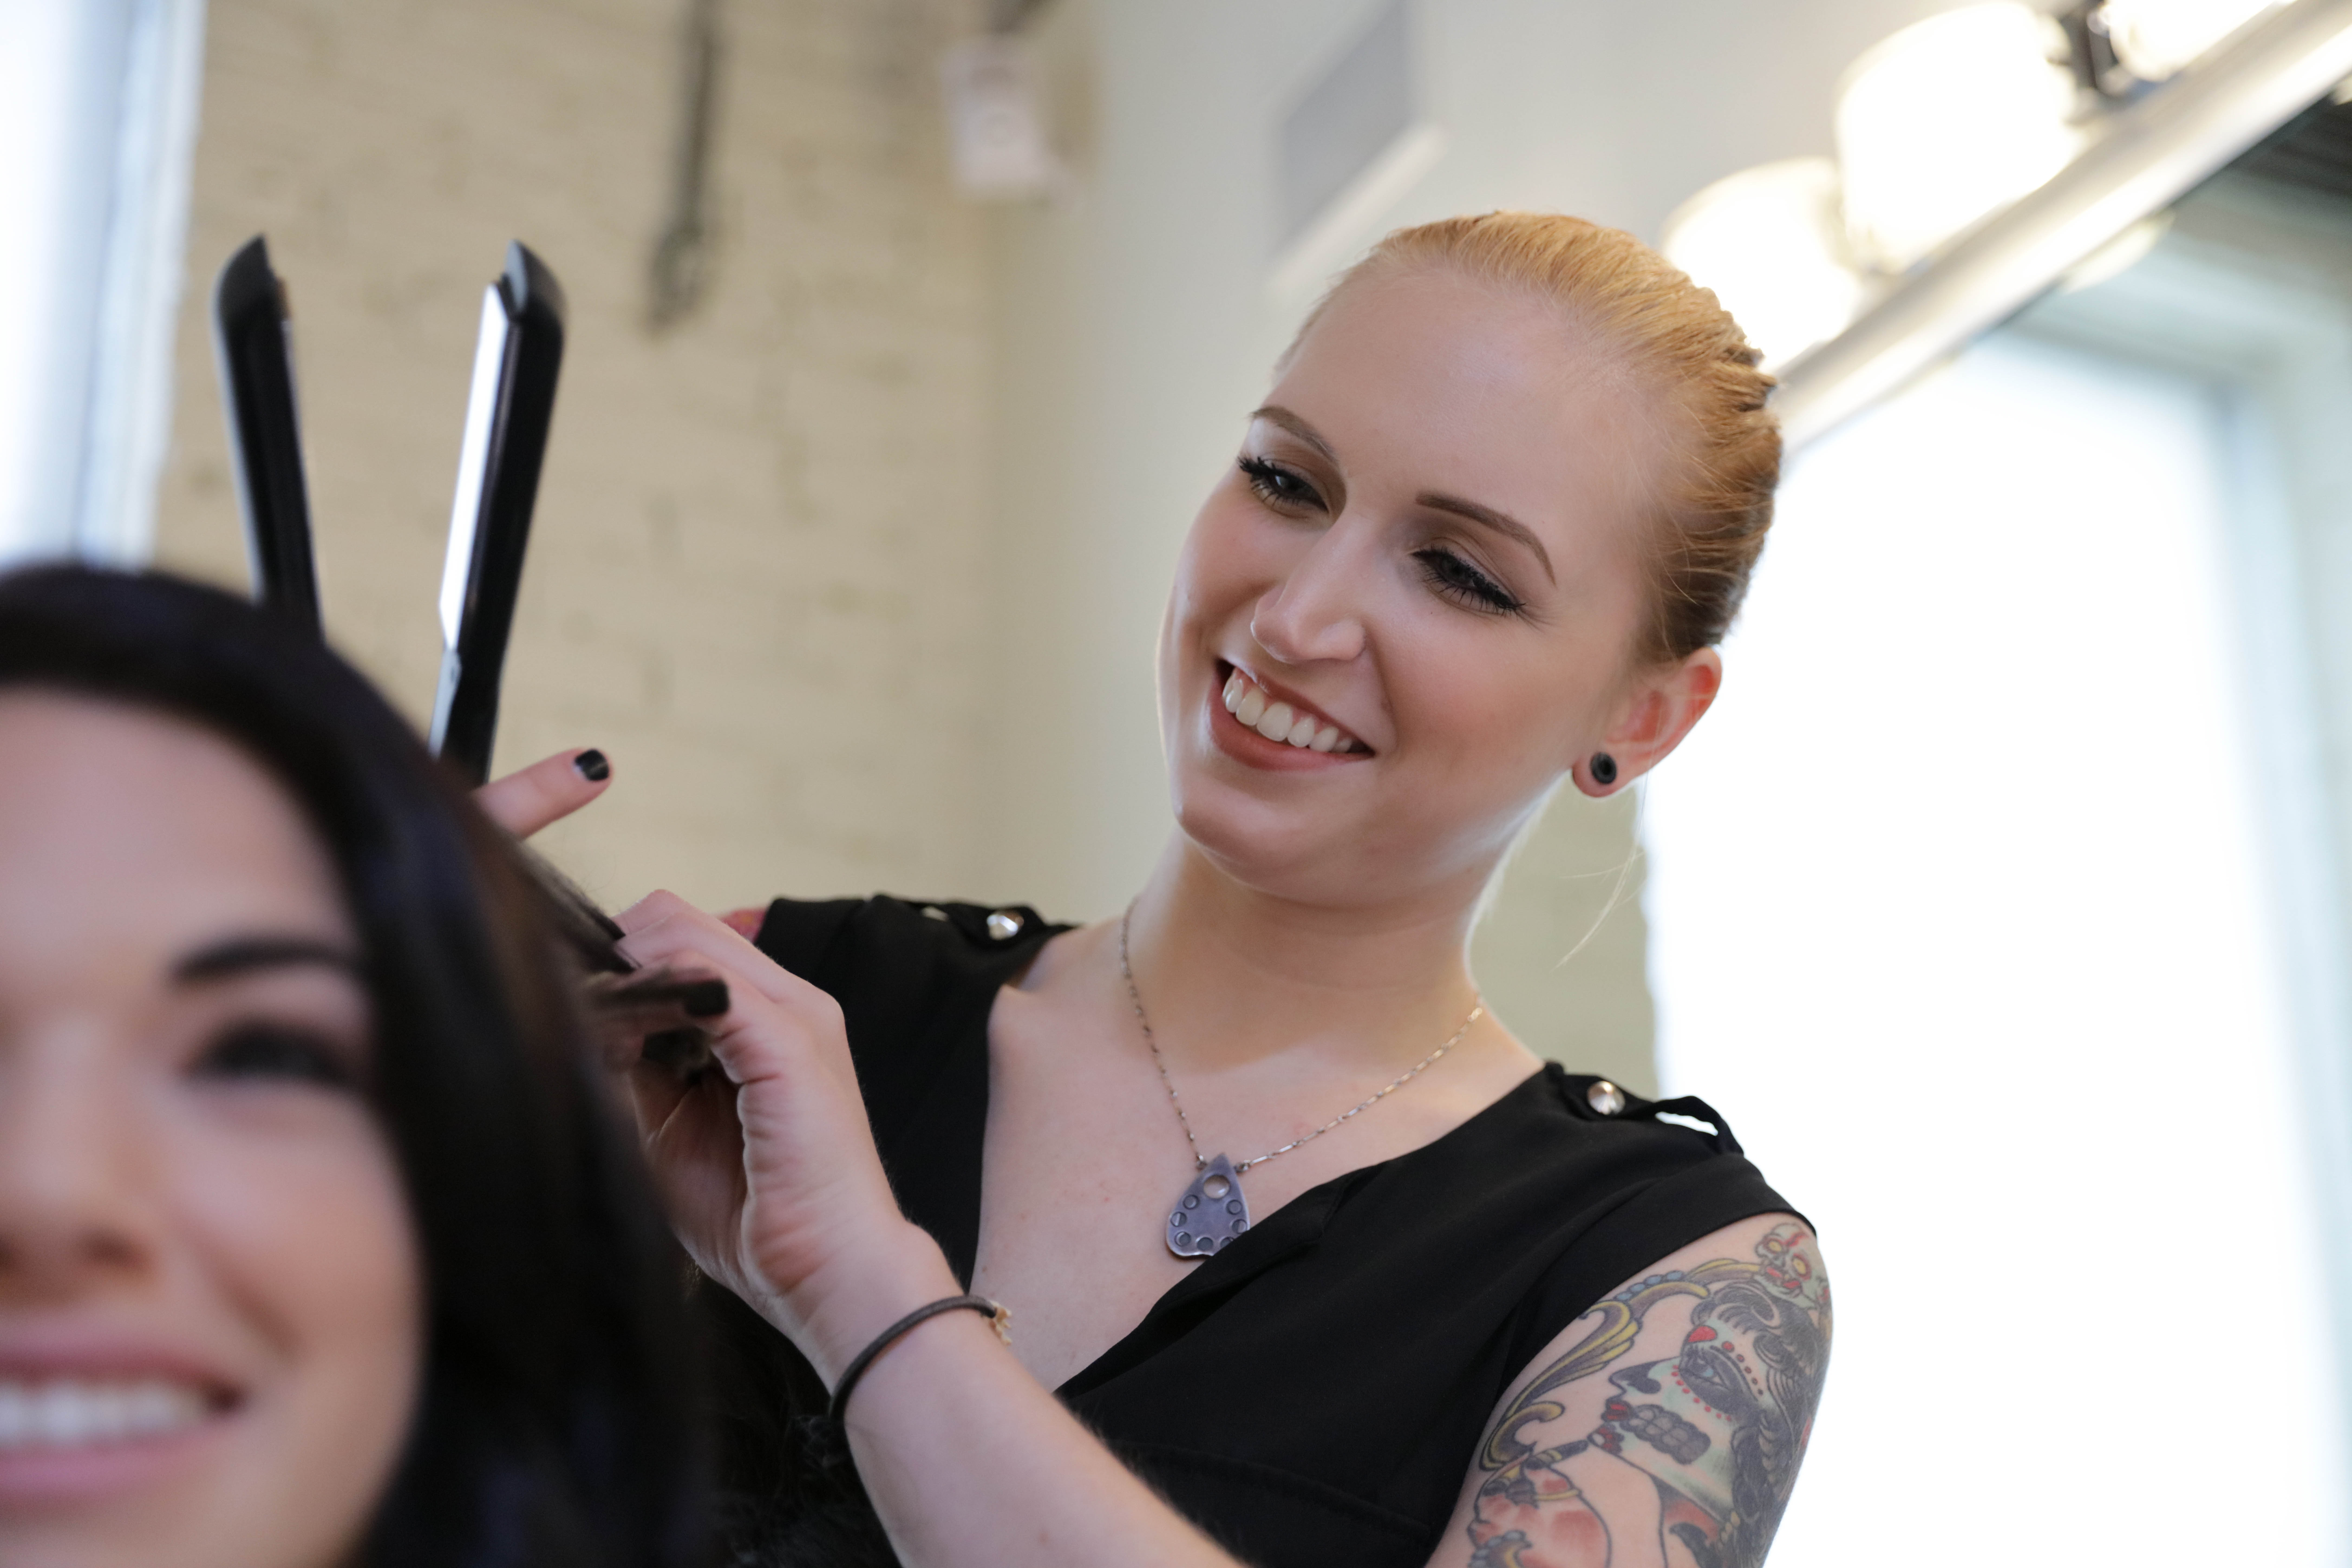 Image of Makeup Artist and Model